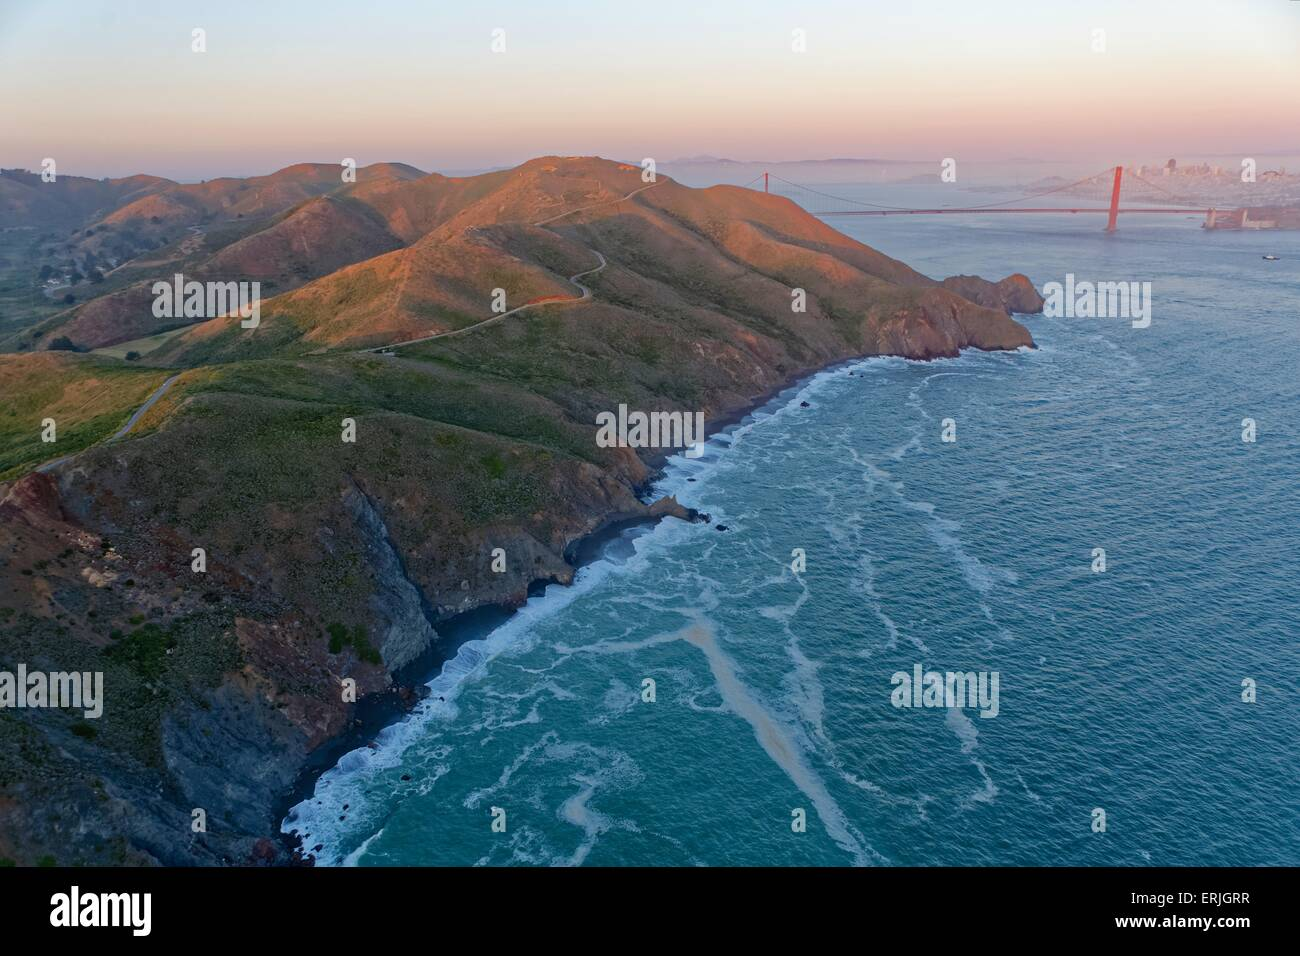 Aerial view over  the Marin Headlands and the Golden Gate Bridge in San Francisco at sunset - Stock Image